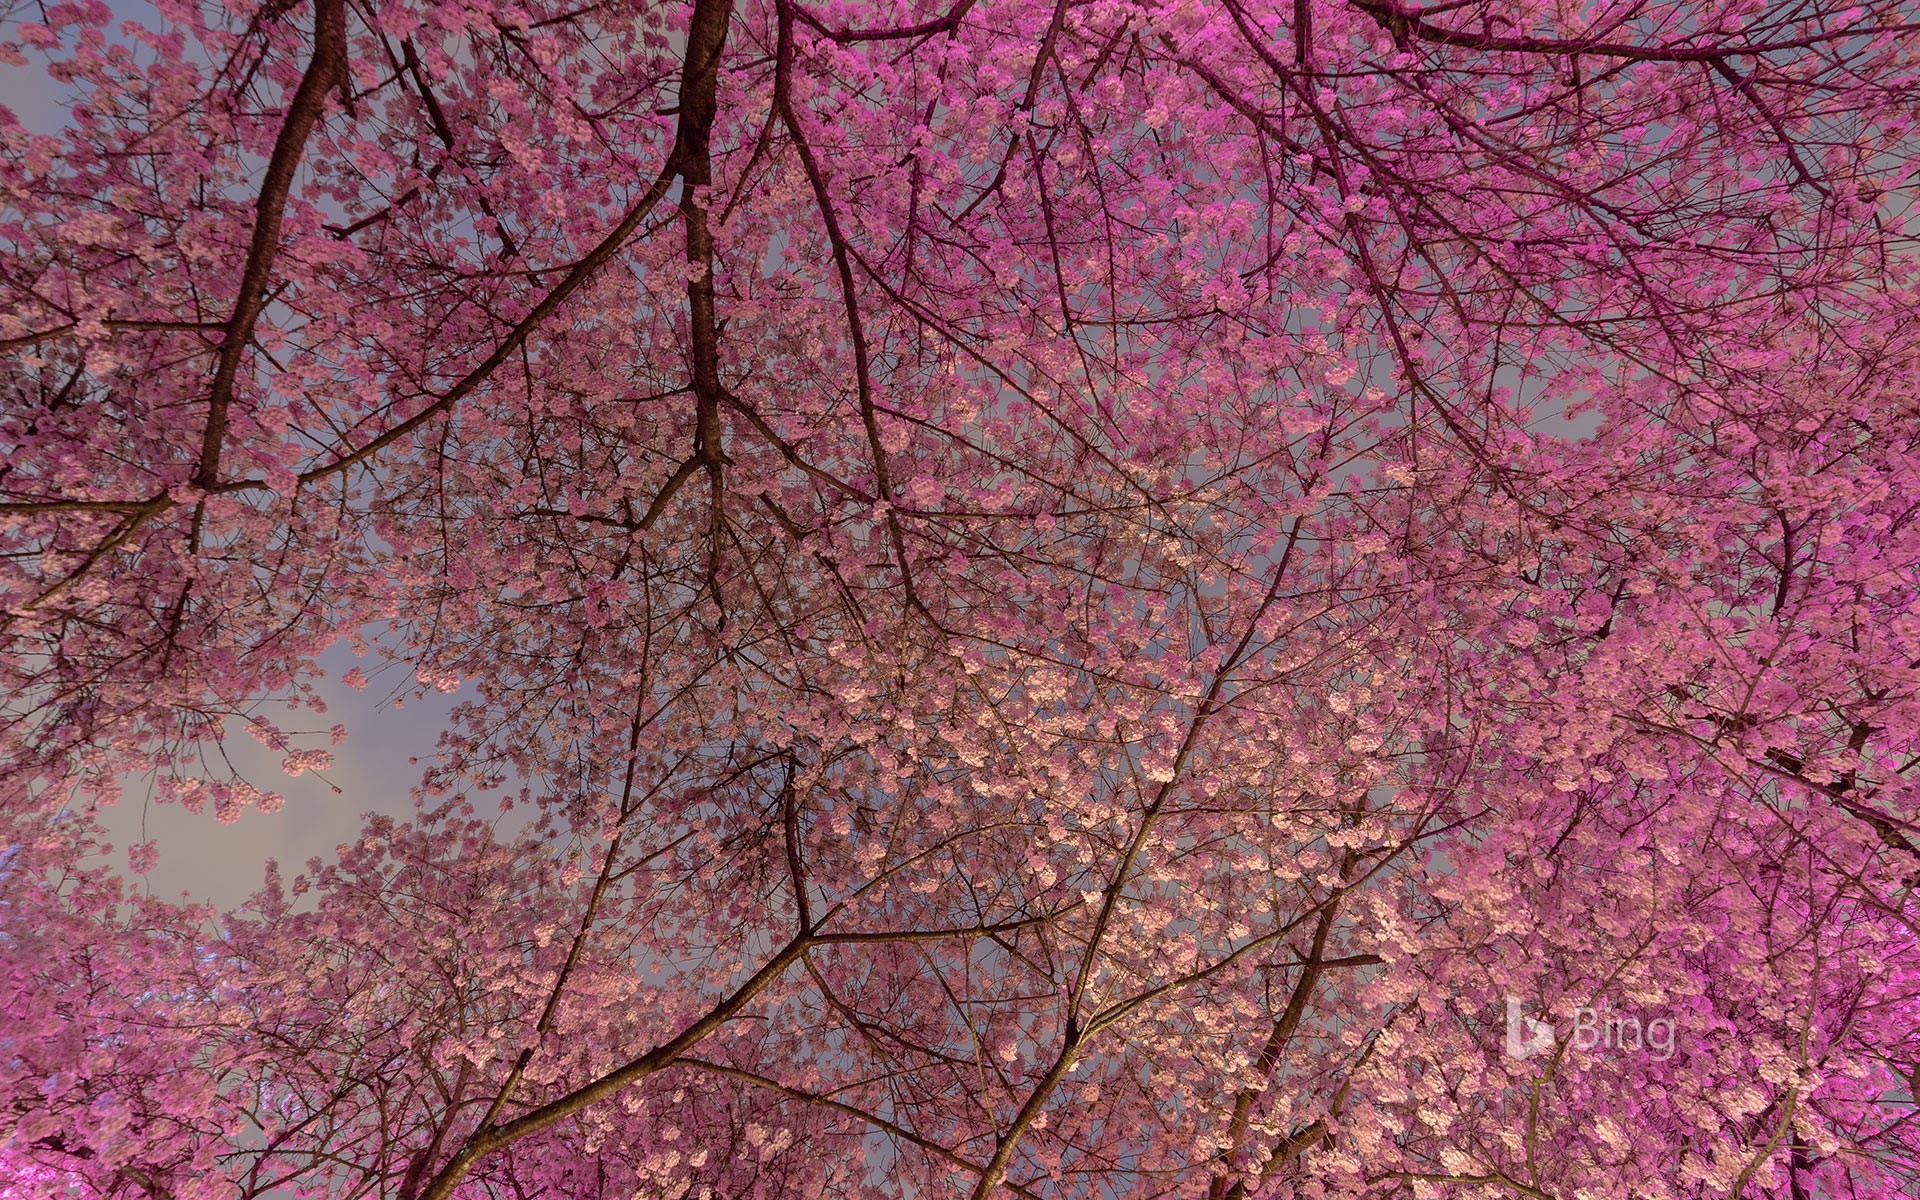 Blooming cherry trees in Vancouver, B.C., Canada